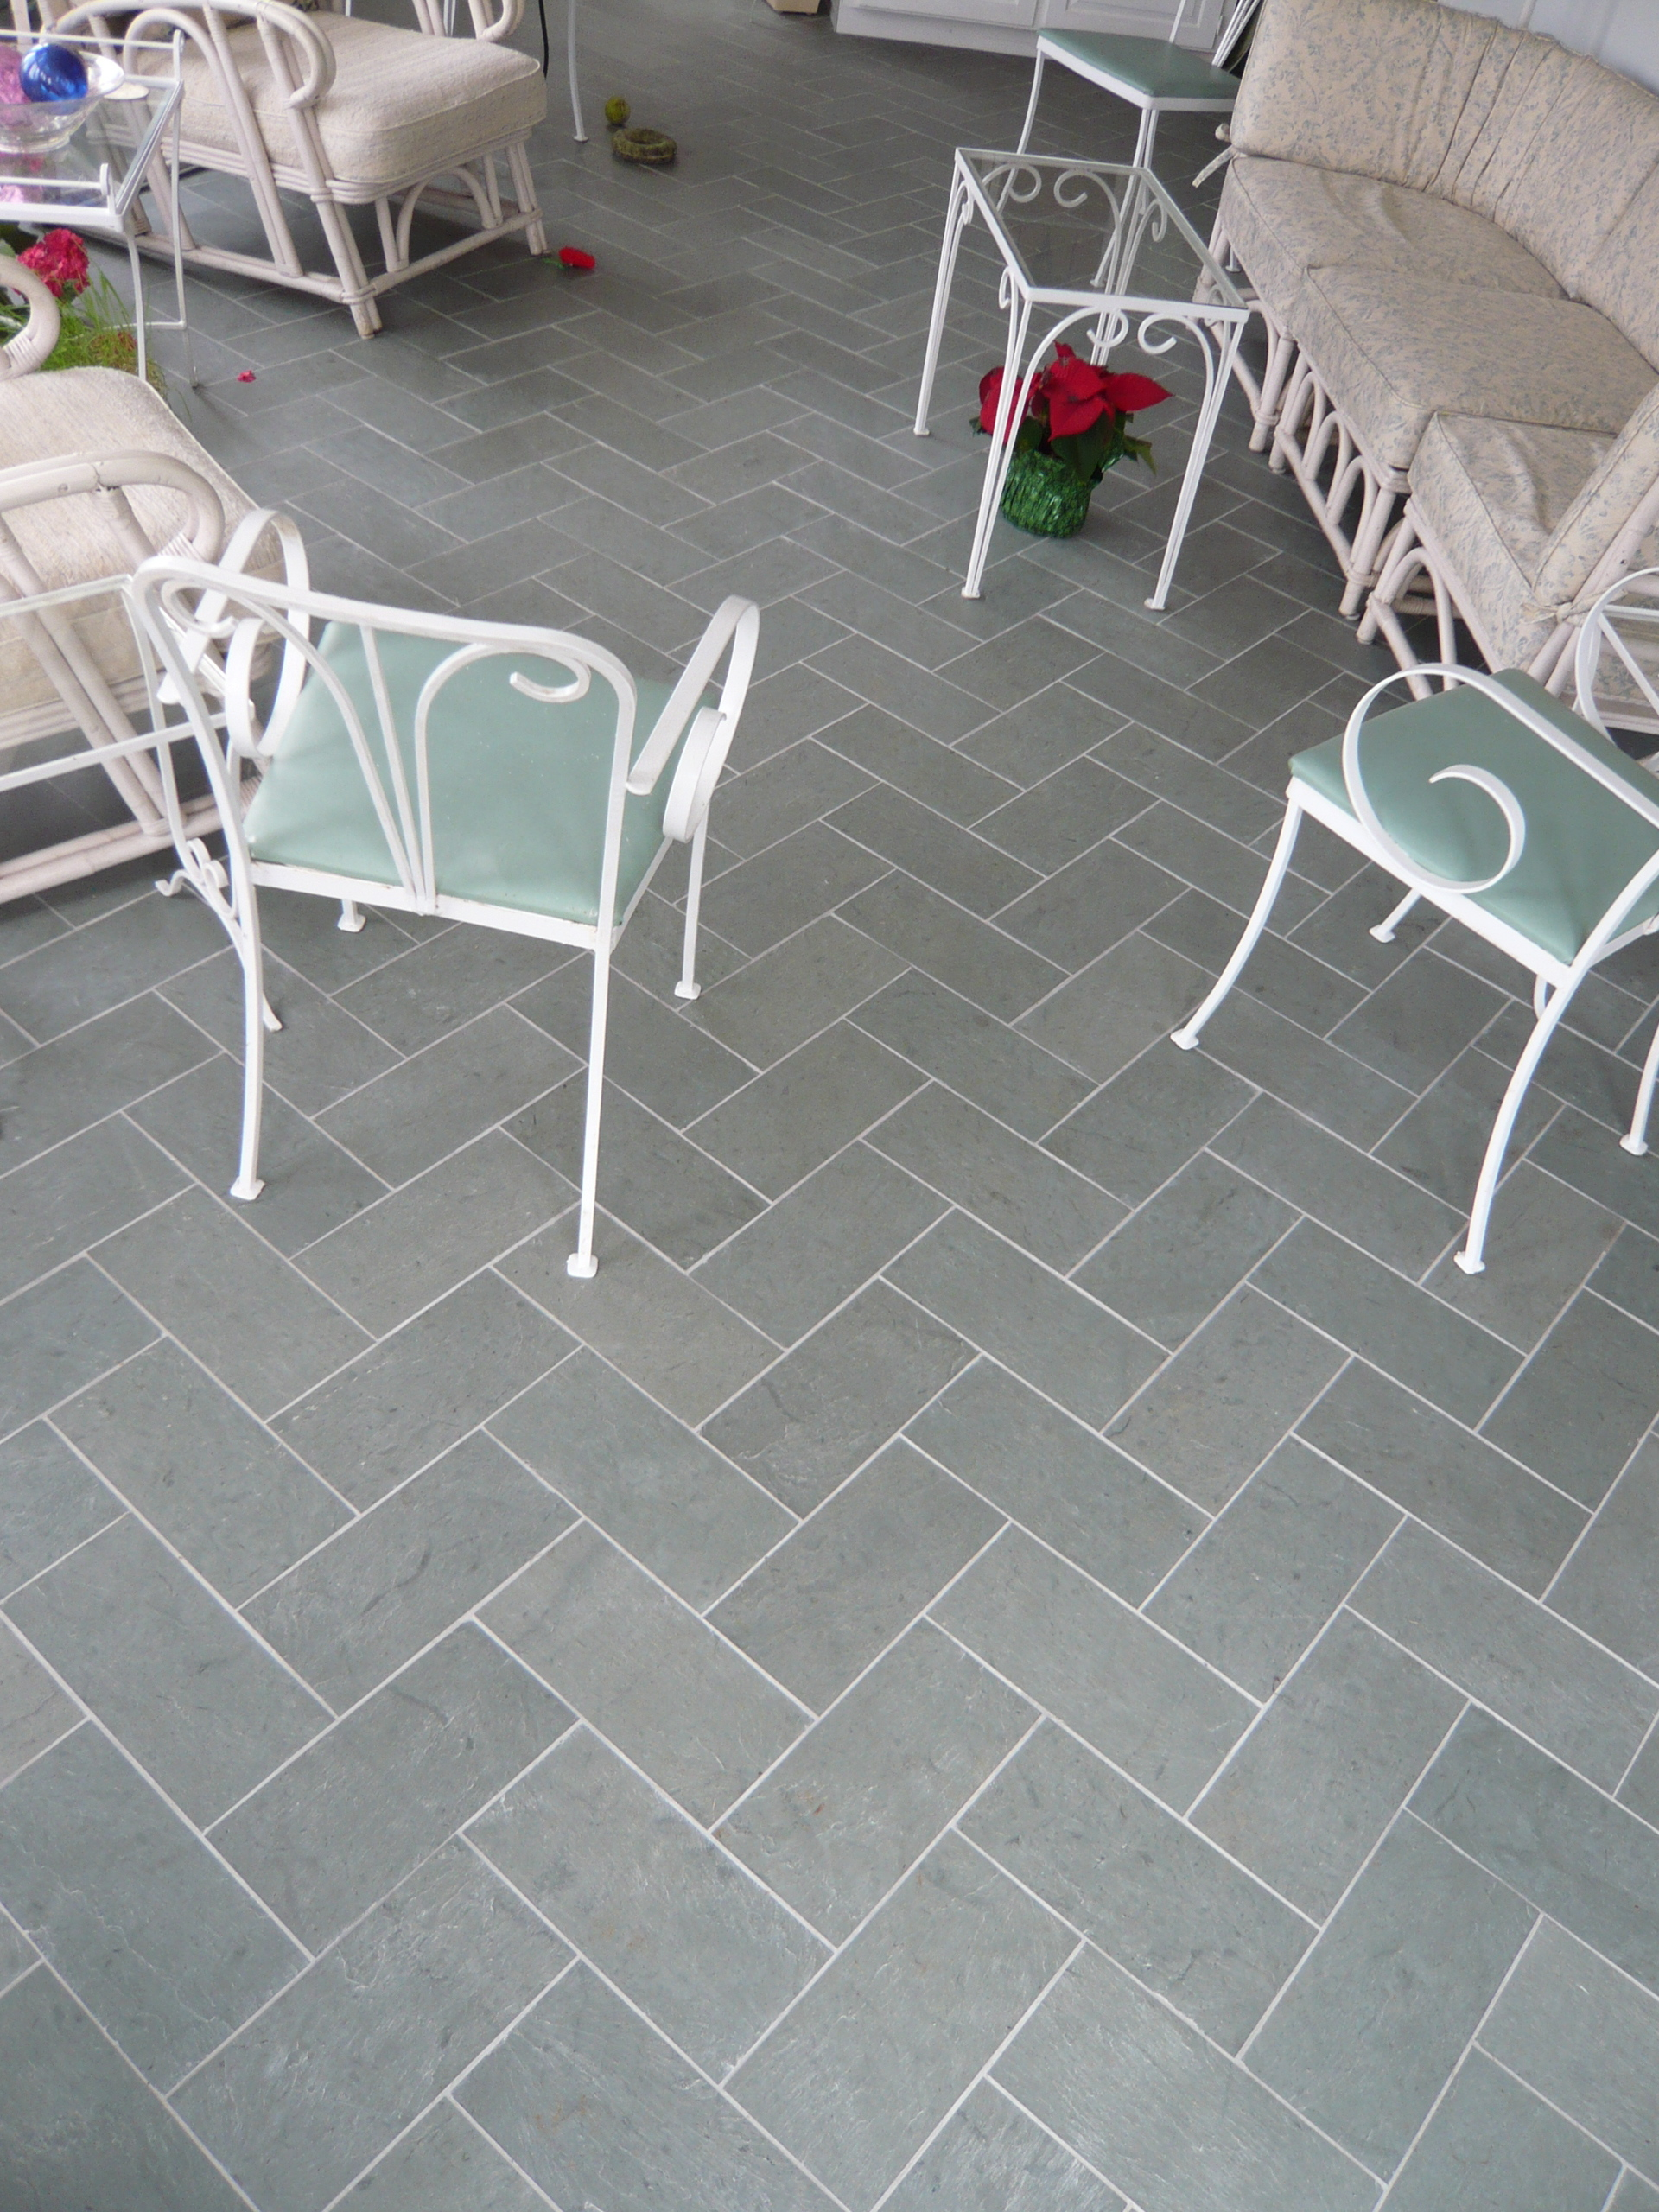 Slate tile grouted with laticrete epoxy grout 1part silver shadow slate tile grouted with laticrete epoxy grout 1part silver shadow and 3parts platinum home is where the heart is pinterest epoxy grout tile grout dailygadgetfo Image collections